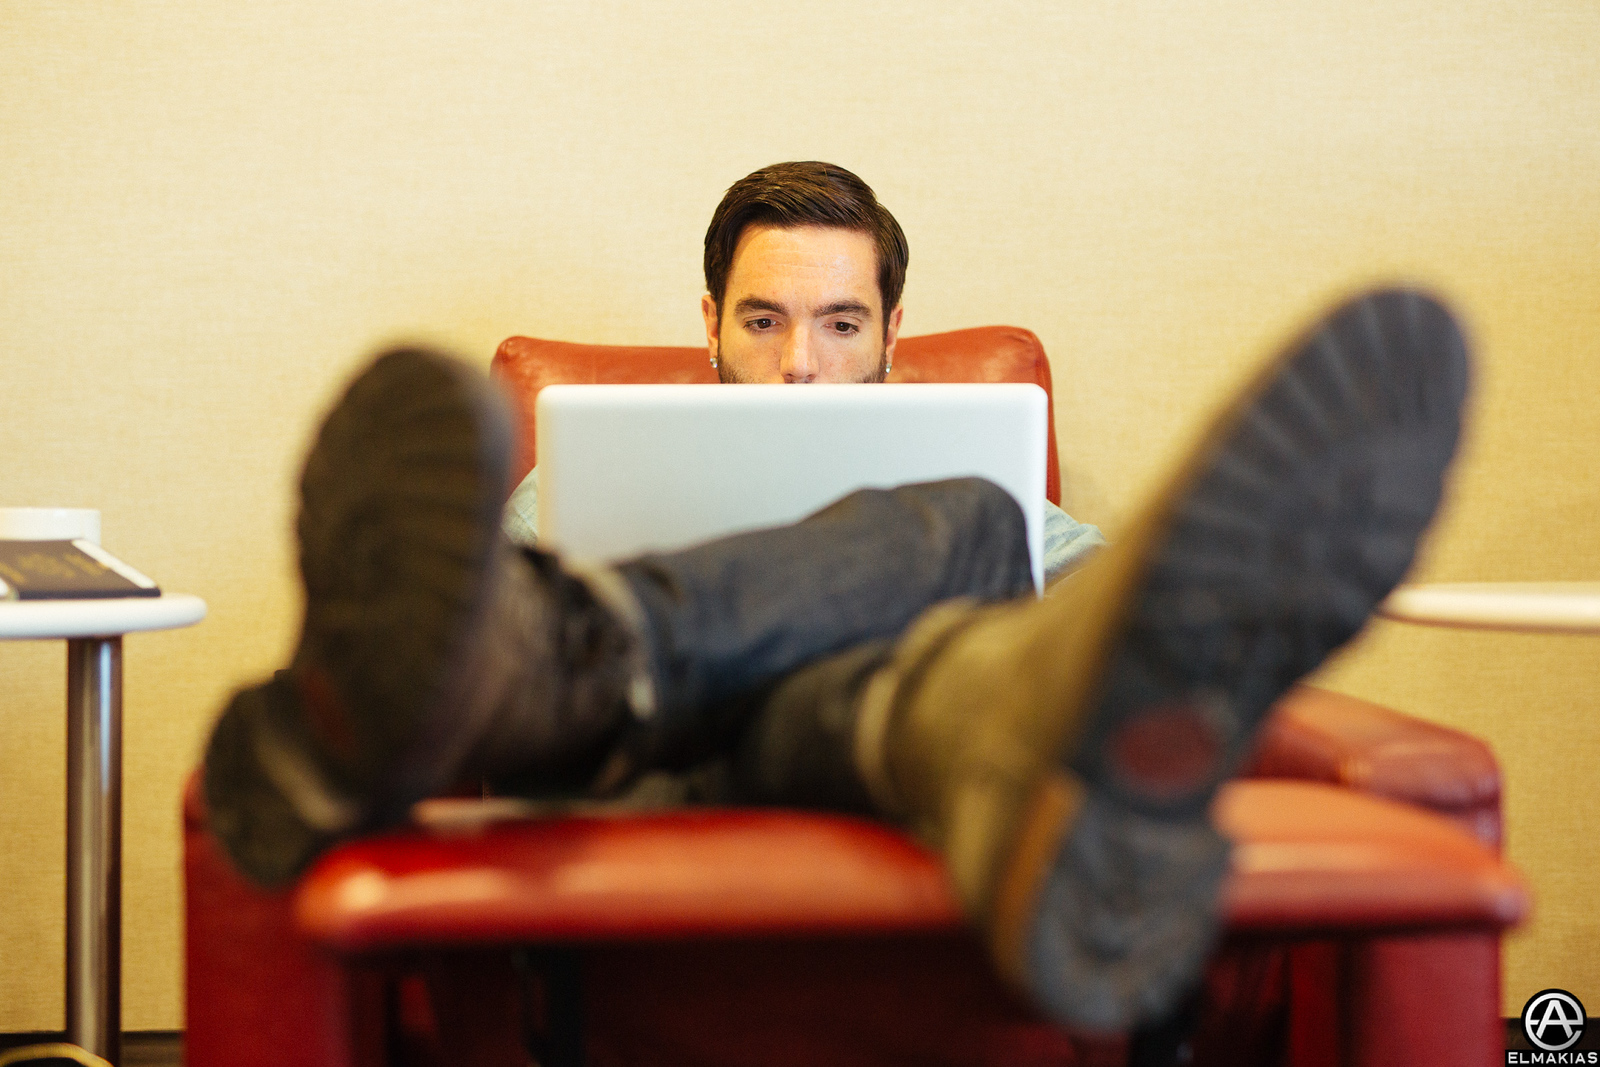 Jeremy McKinnon in laptop land